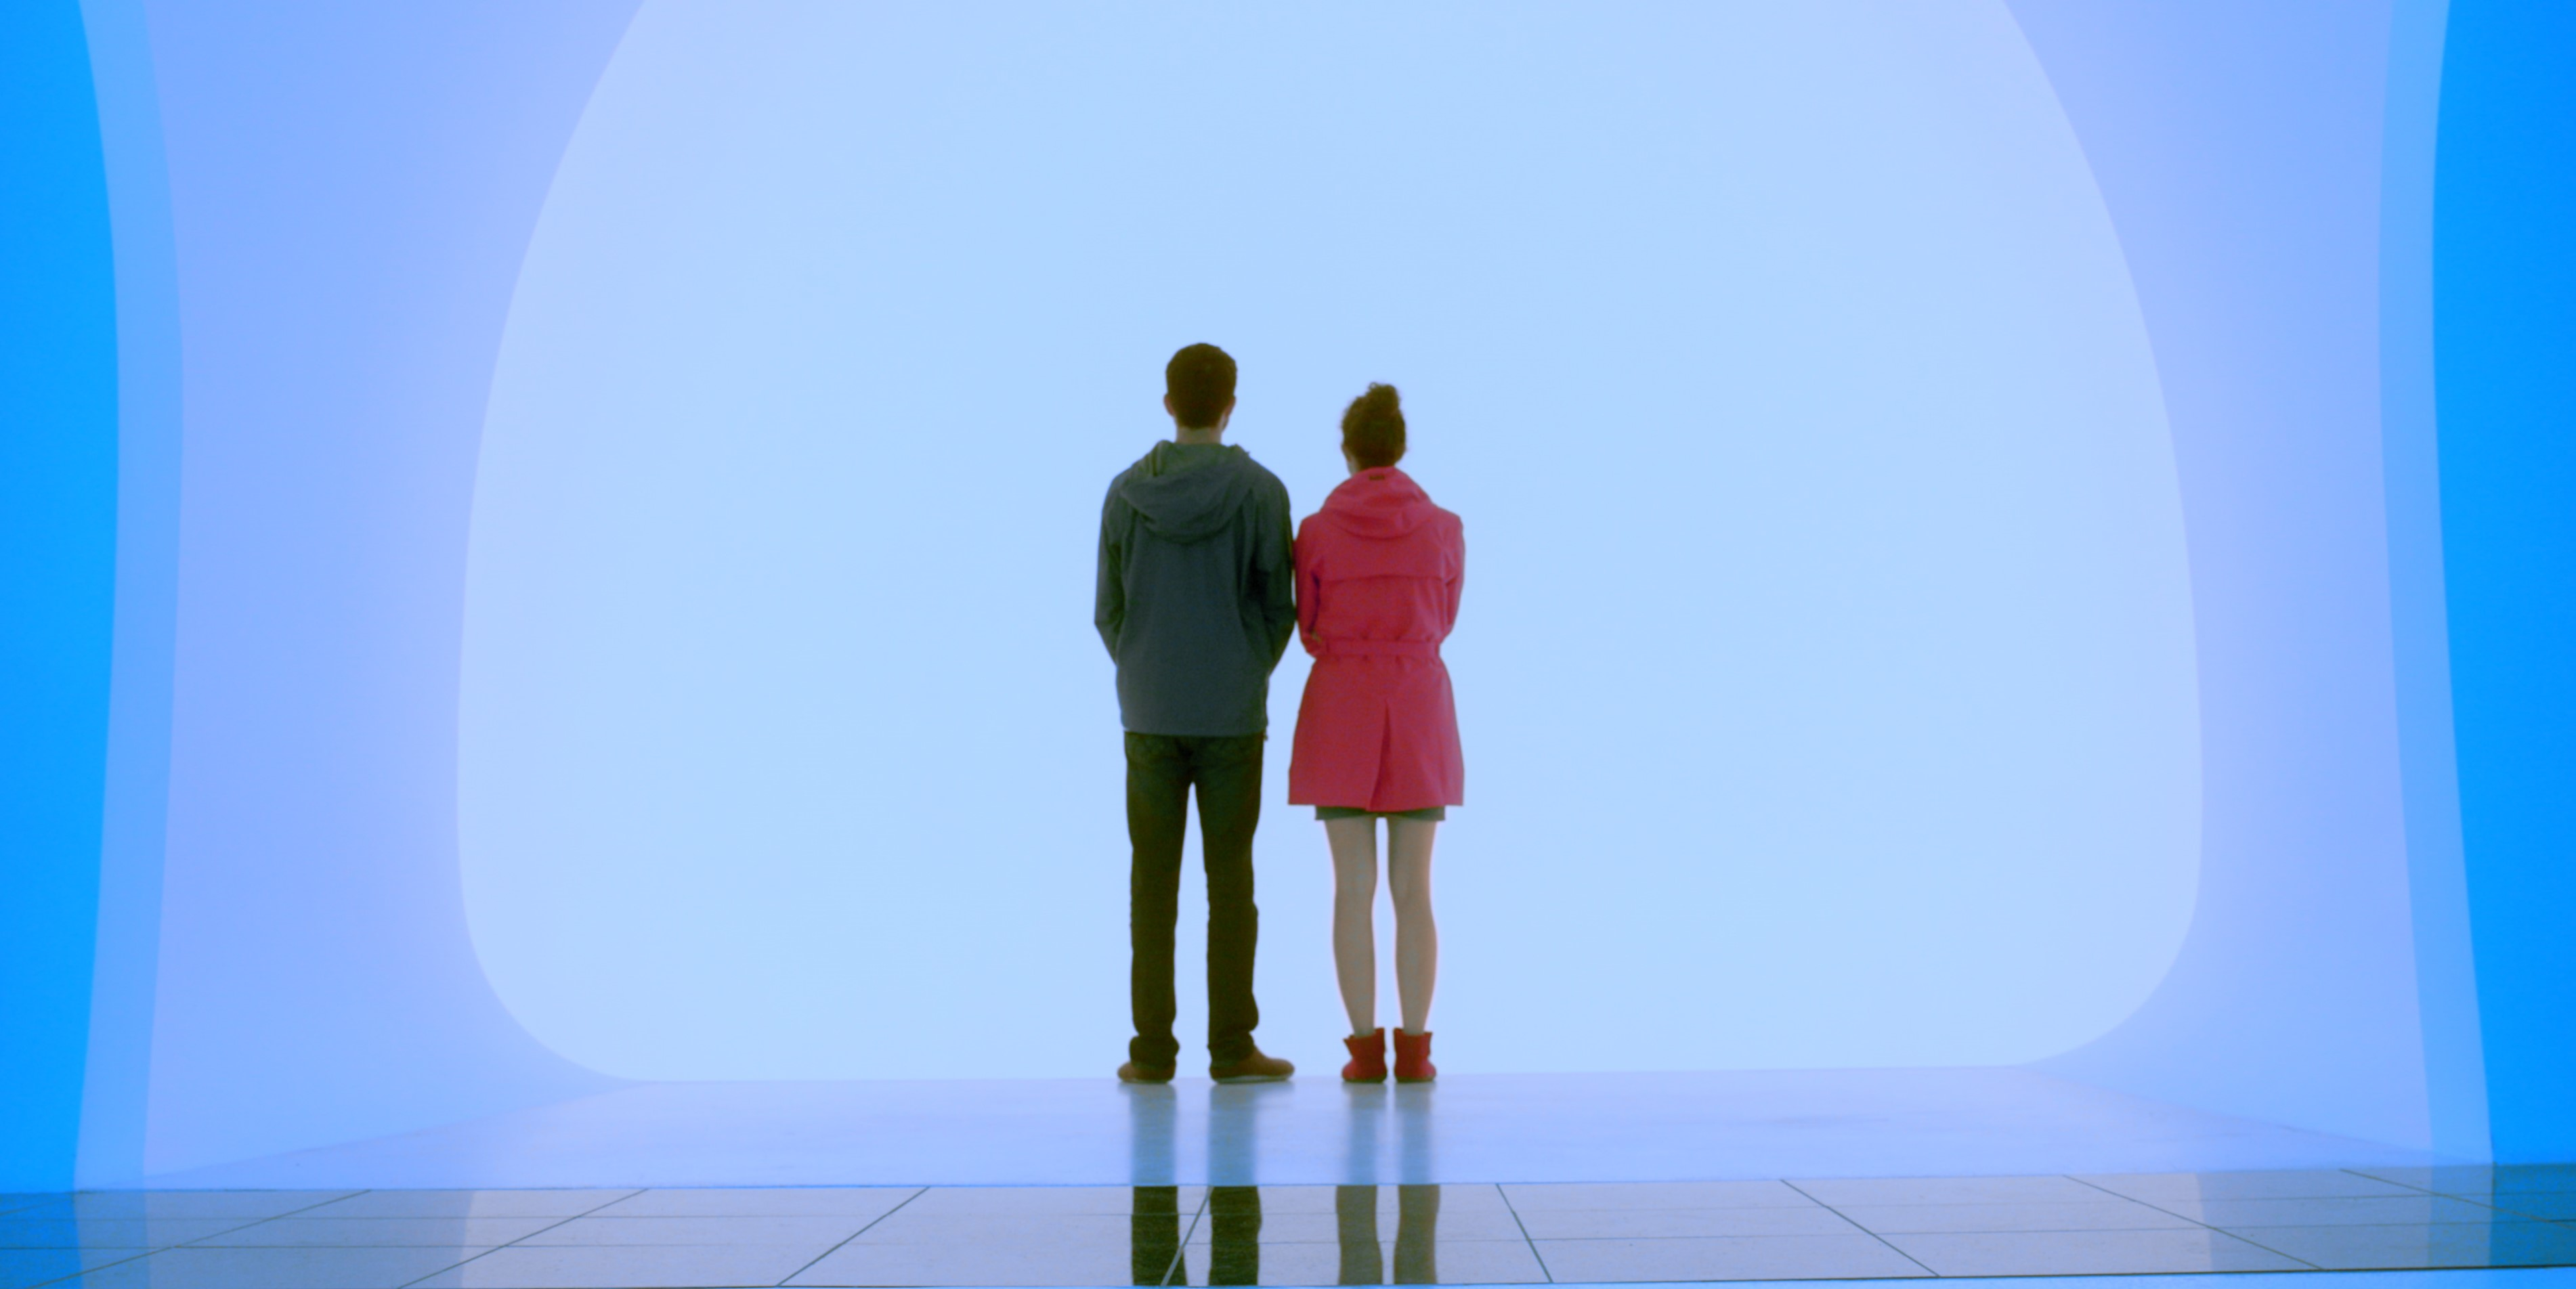 Marela and Sam visiting the James Turrell installation in Ekebergparken Sculpture Park